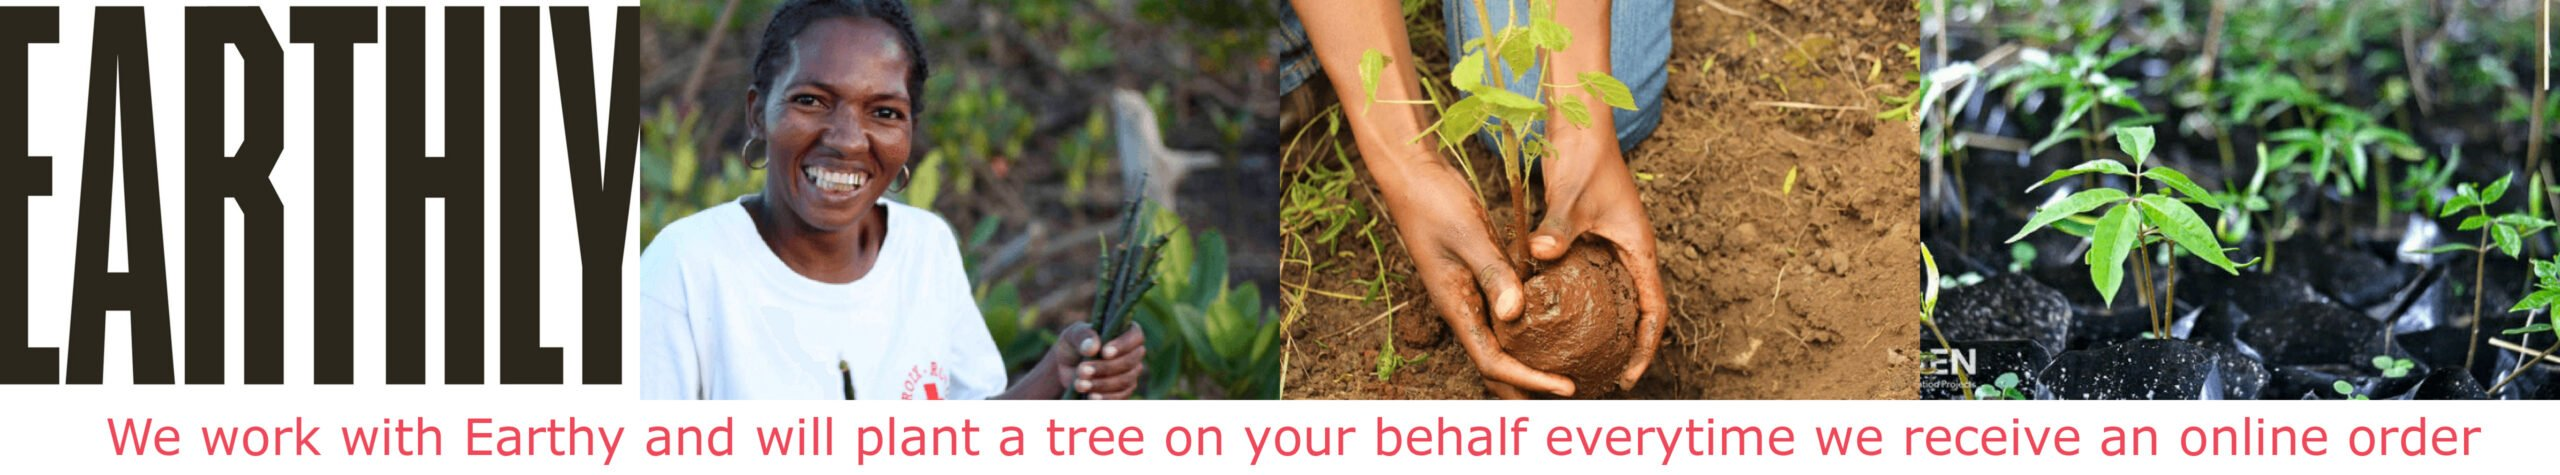 Whirligig Toys - Earthly Tree Planting Scheme